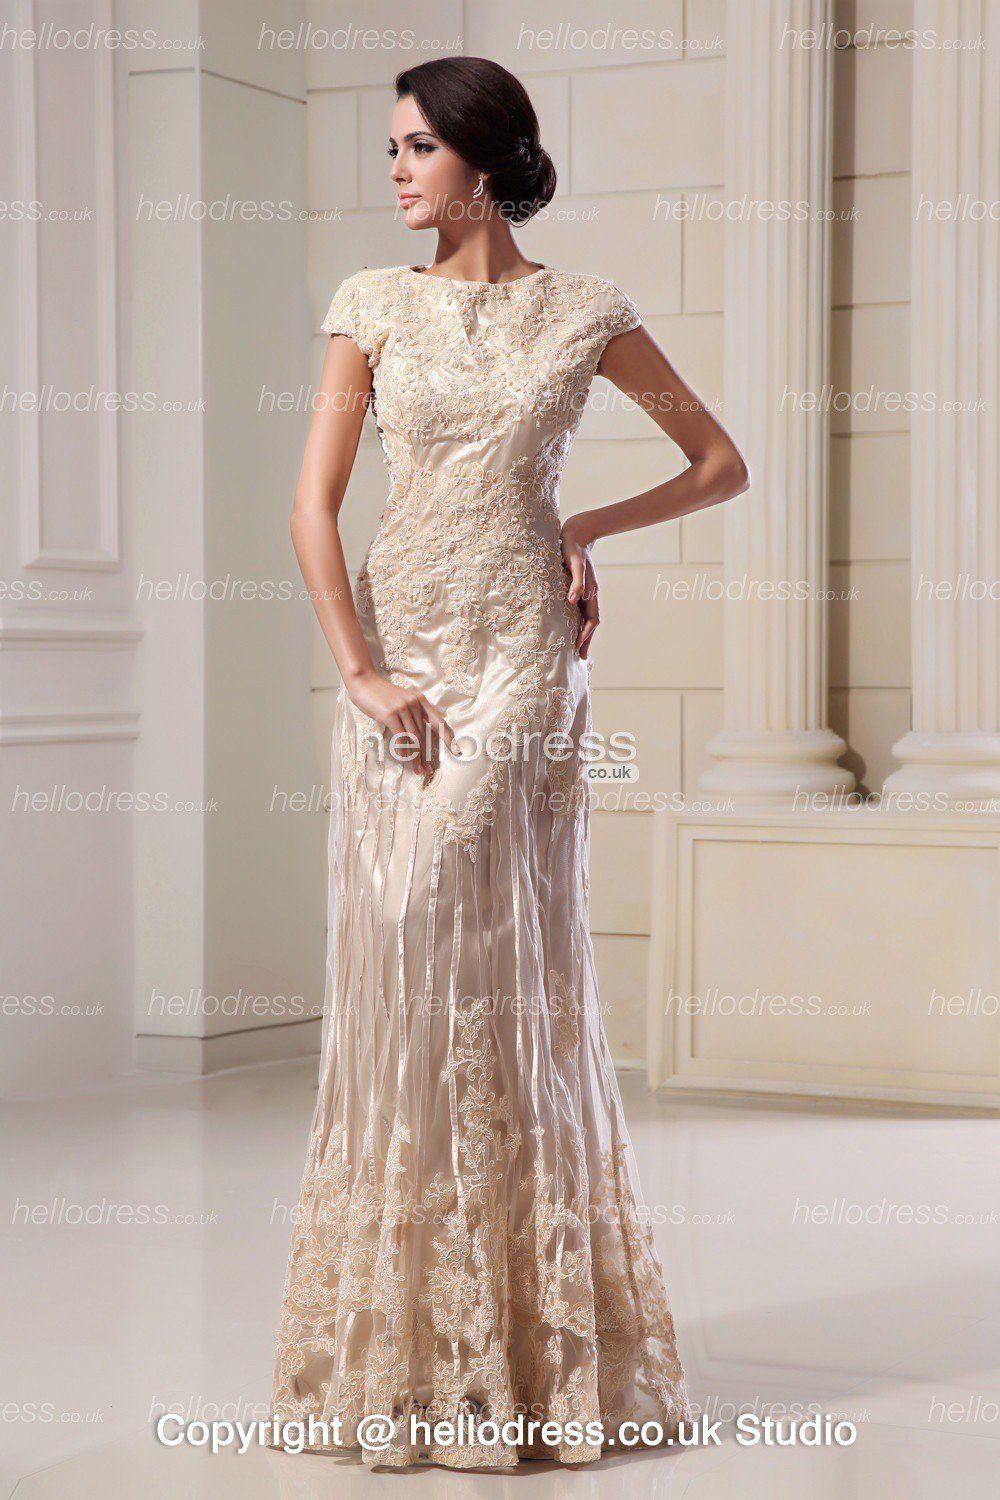 Short champagne wedding dresses  Elegant Lace Champagne Aline Long Short Sleeves Wedding Gown